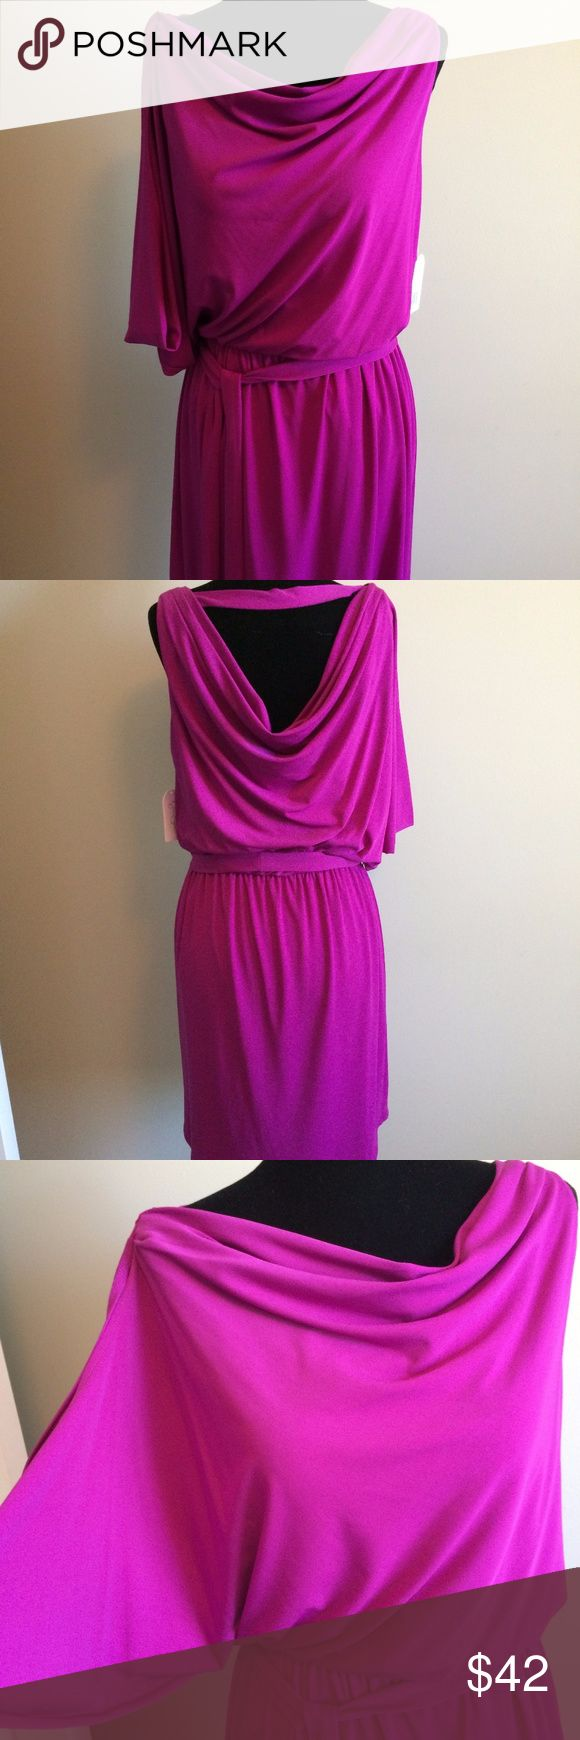 NEW!Jessica Simpson Hot Pink cocktail dress size 6 New! Jessica Simpson Hot Pink cocktail dress size 6. Asymmetrical sleeves with sash belt, jersey material. Gorgeous color and funky style! Great for weddings, going out or other dress up occasions. Jessica Simpson Dresses Asymmetrical